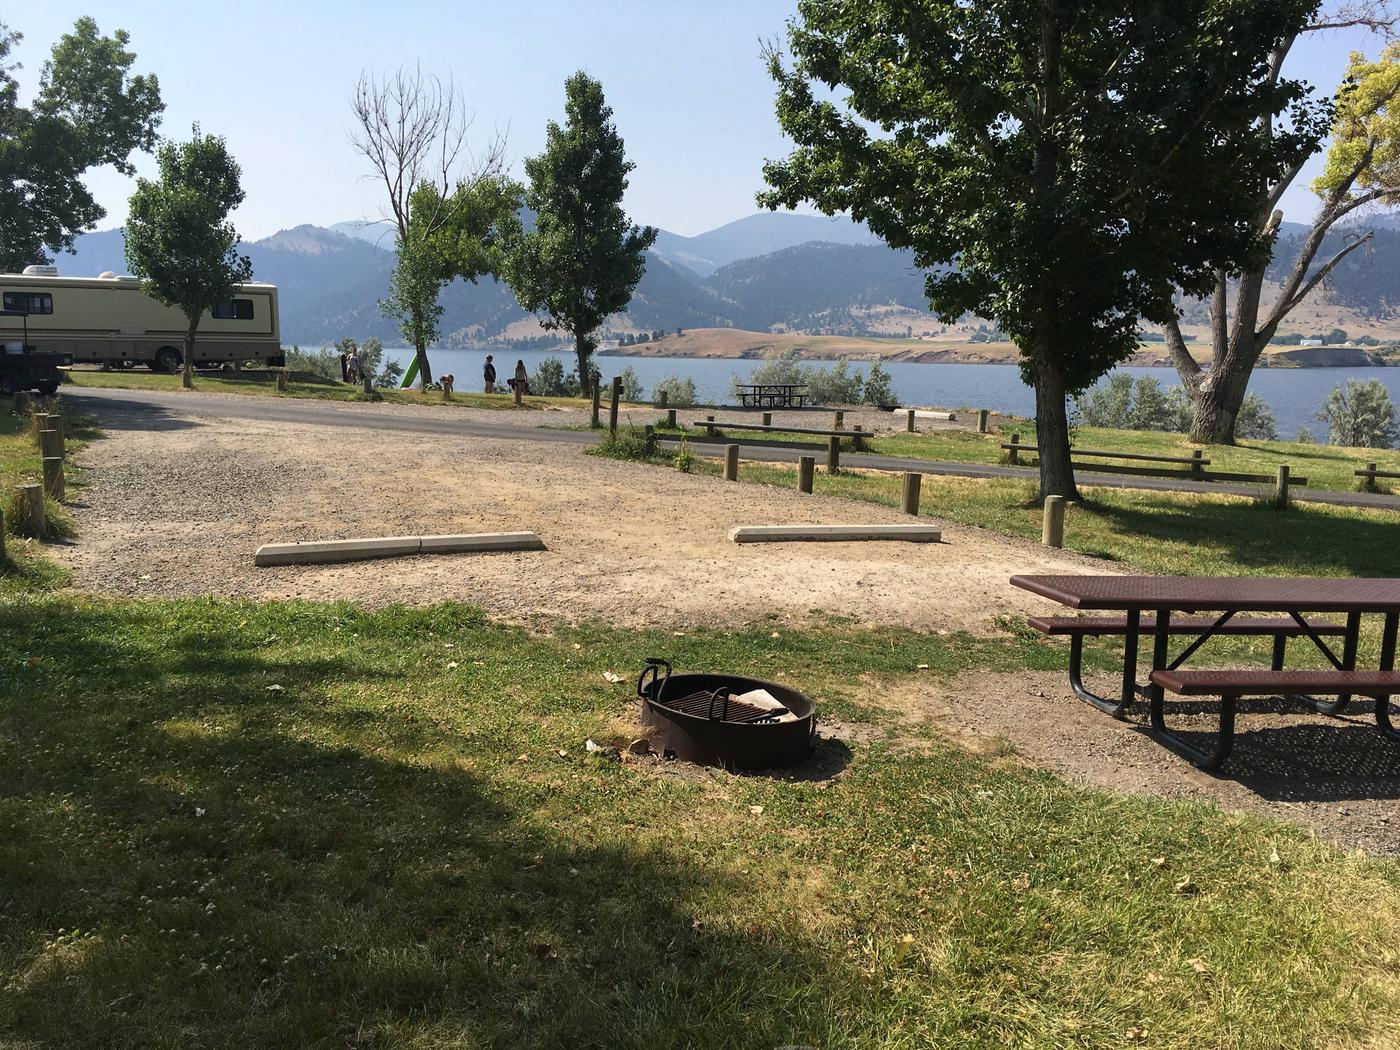 Site 9 is an interior campsite at Holter Lake Campground. Holter Lake is viewable from Site 9. Campsites are in between the lake and Site 9.Site 9 BLM Holter Lake Campground.